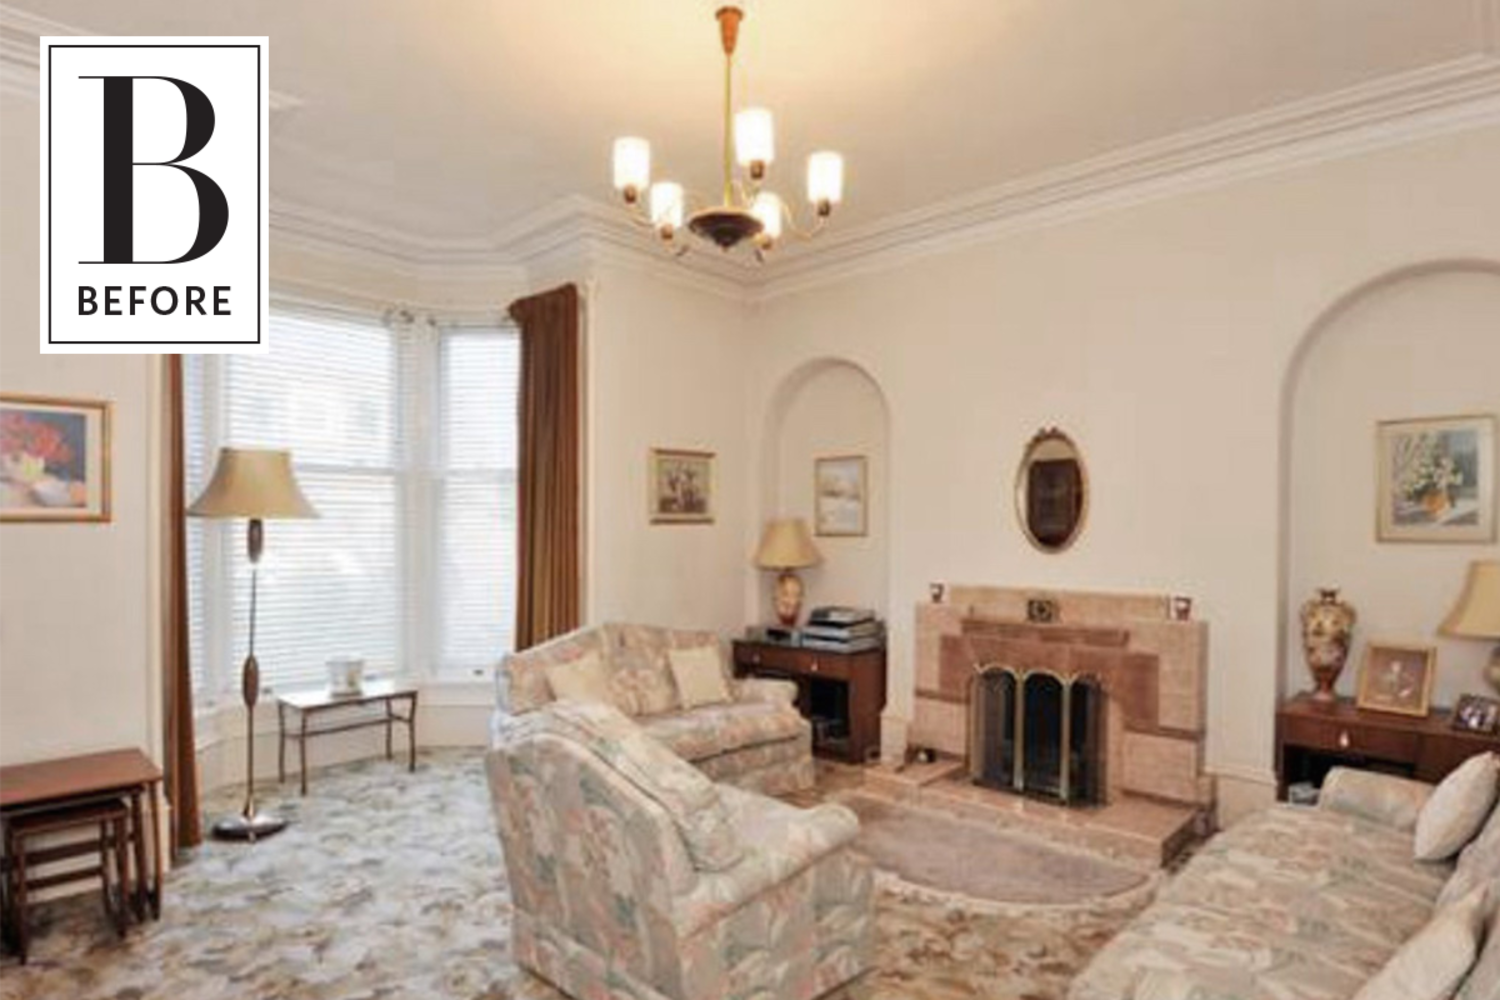 Before & After: A Dated '70s Living Room Gets Dark & Dreamy